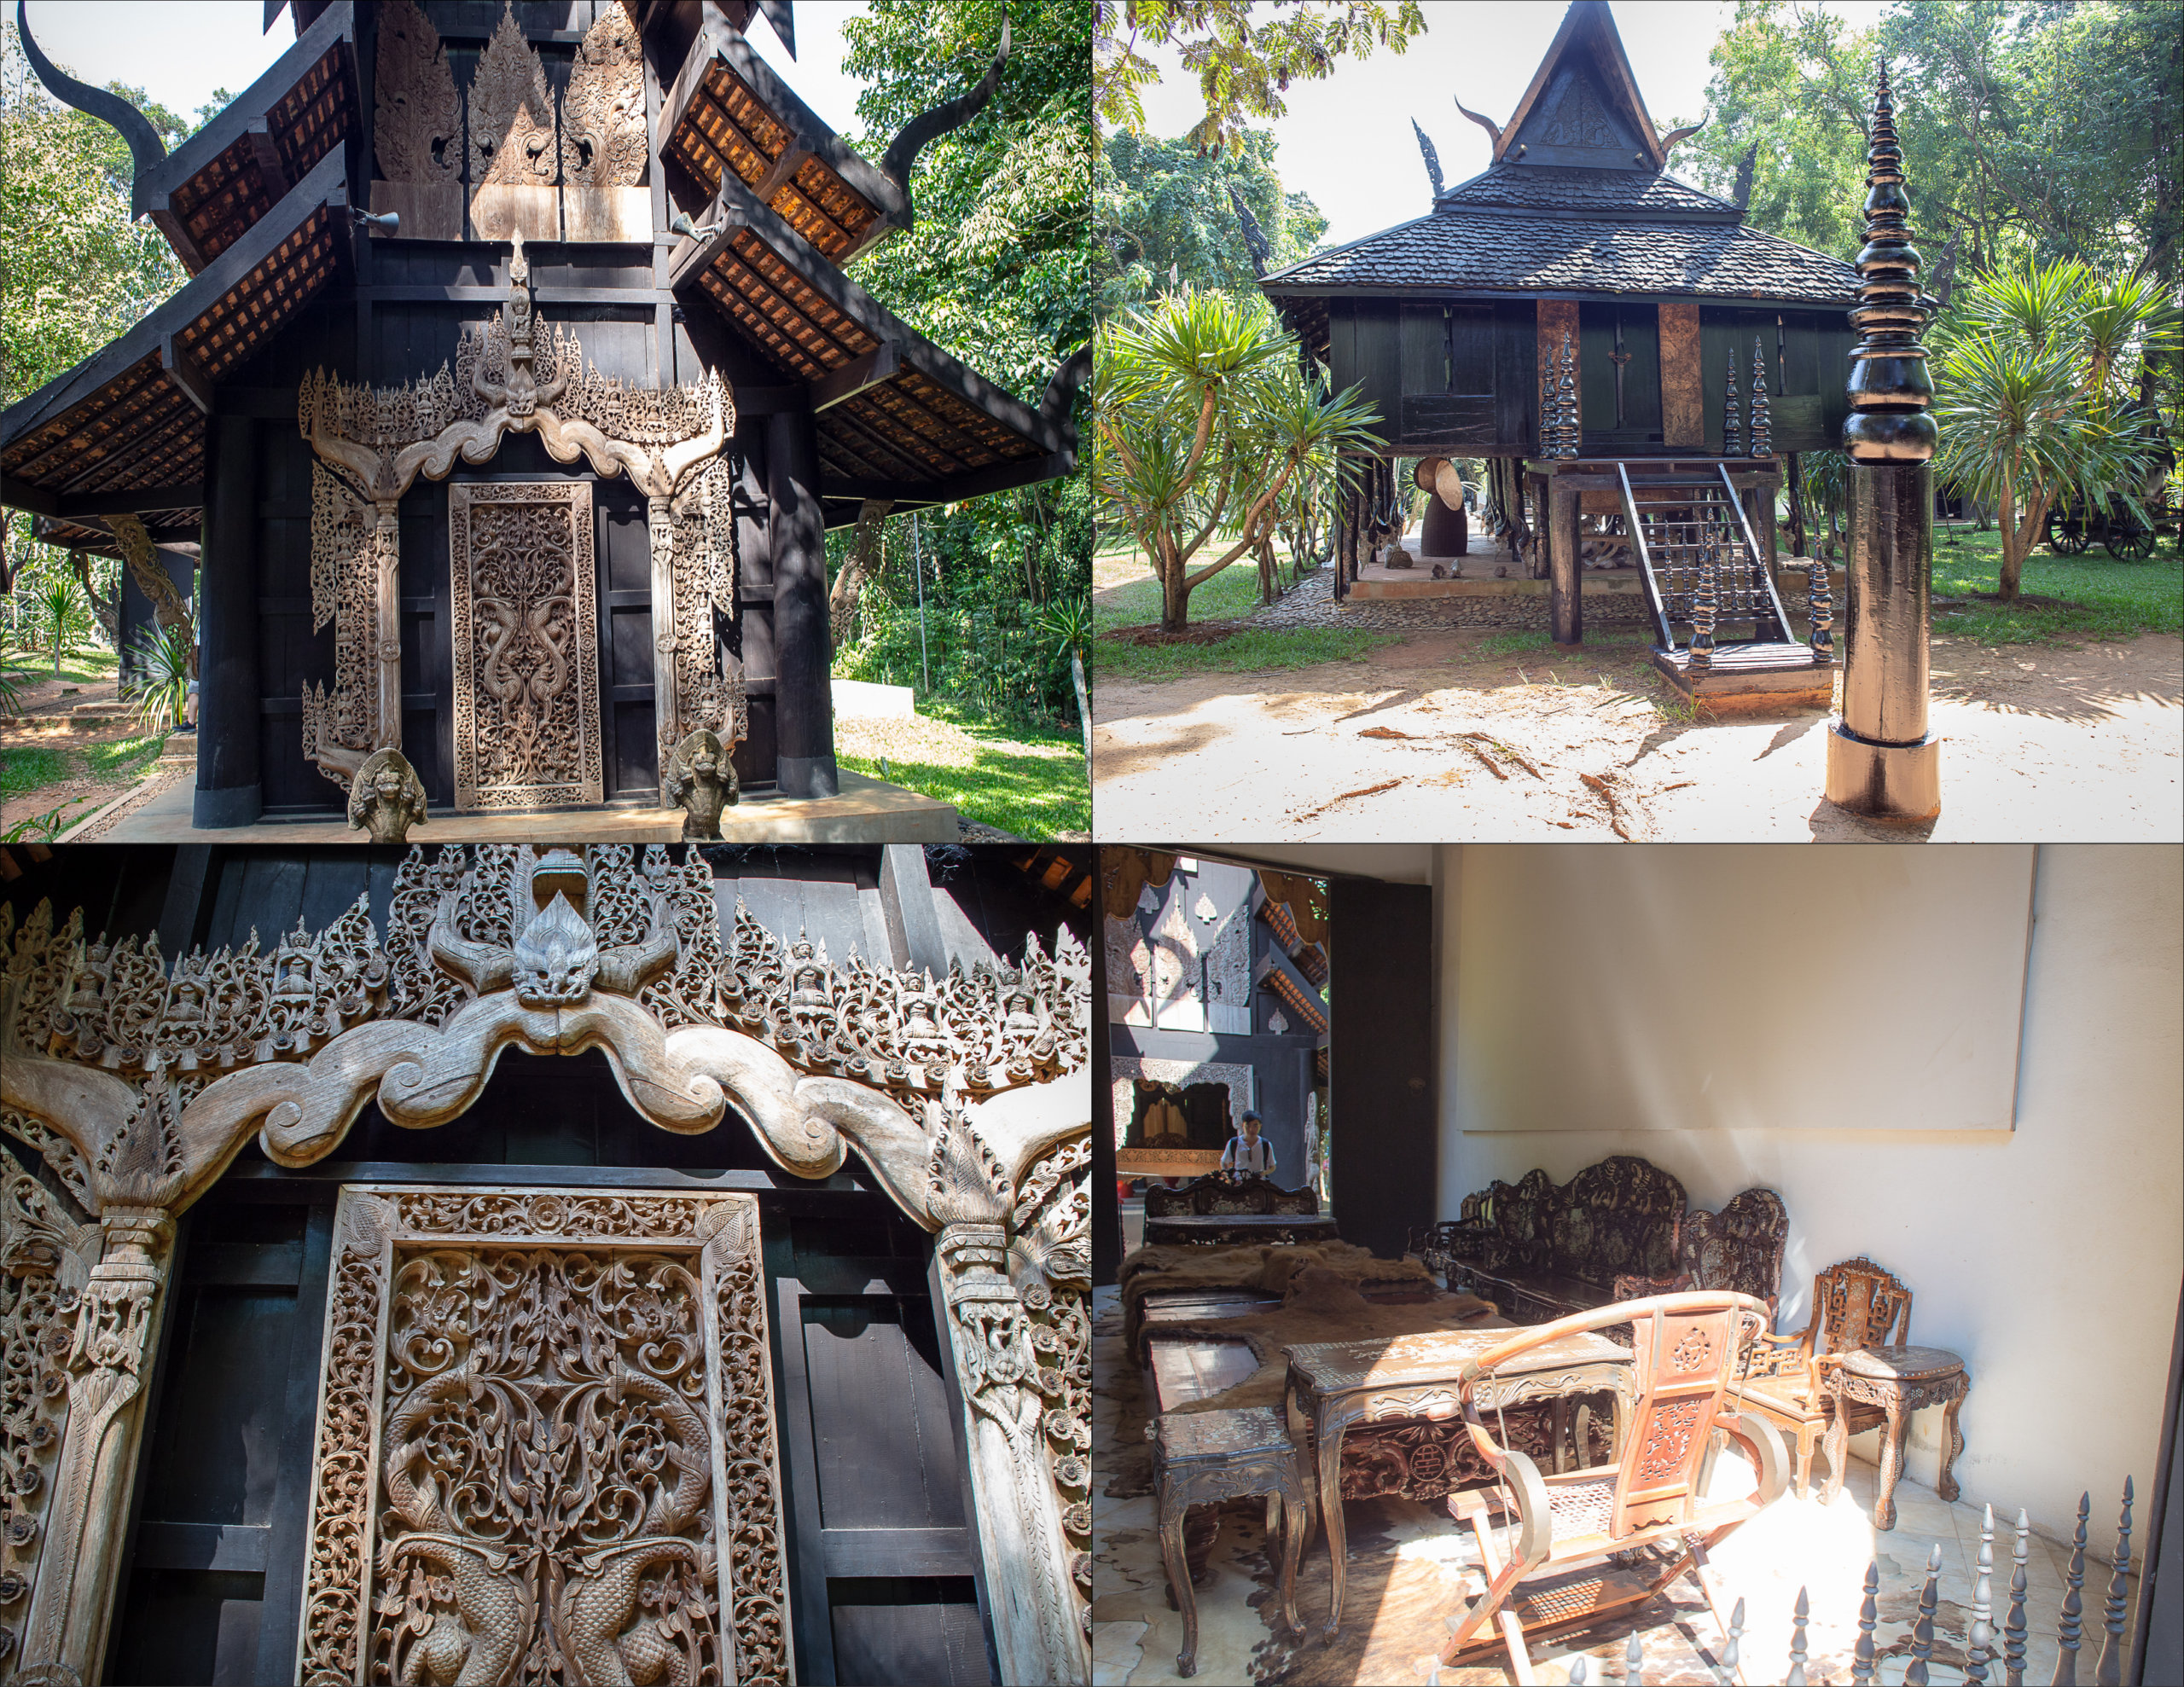 Pearl House & Reclining Buddha Pavilion, Baan dam Museum